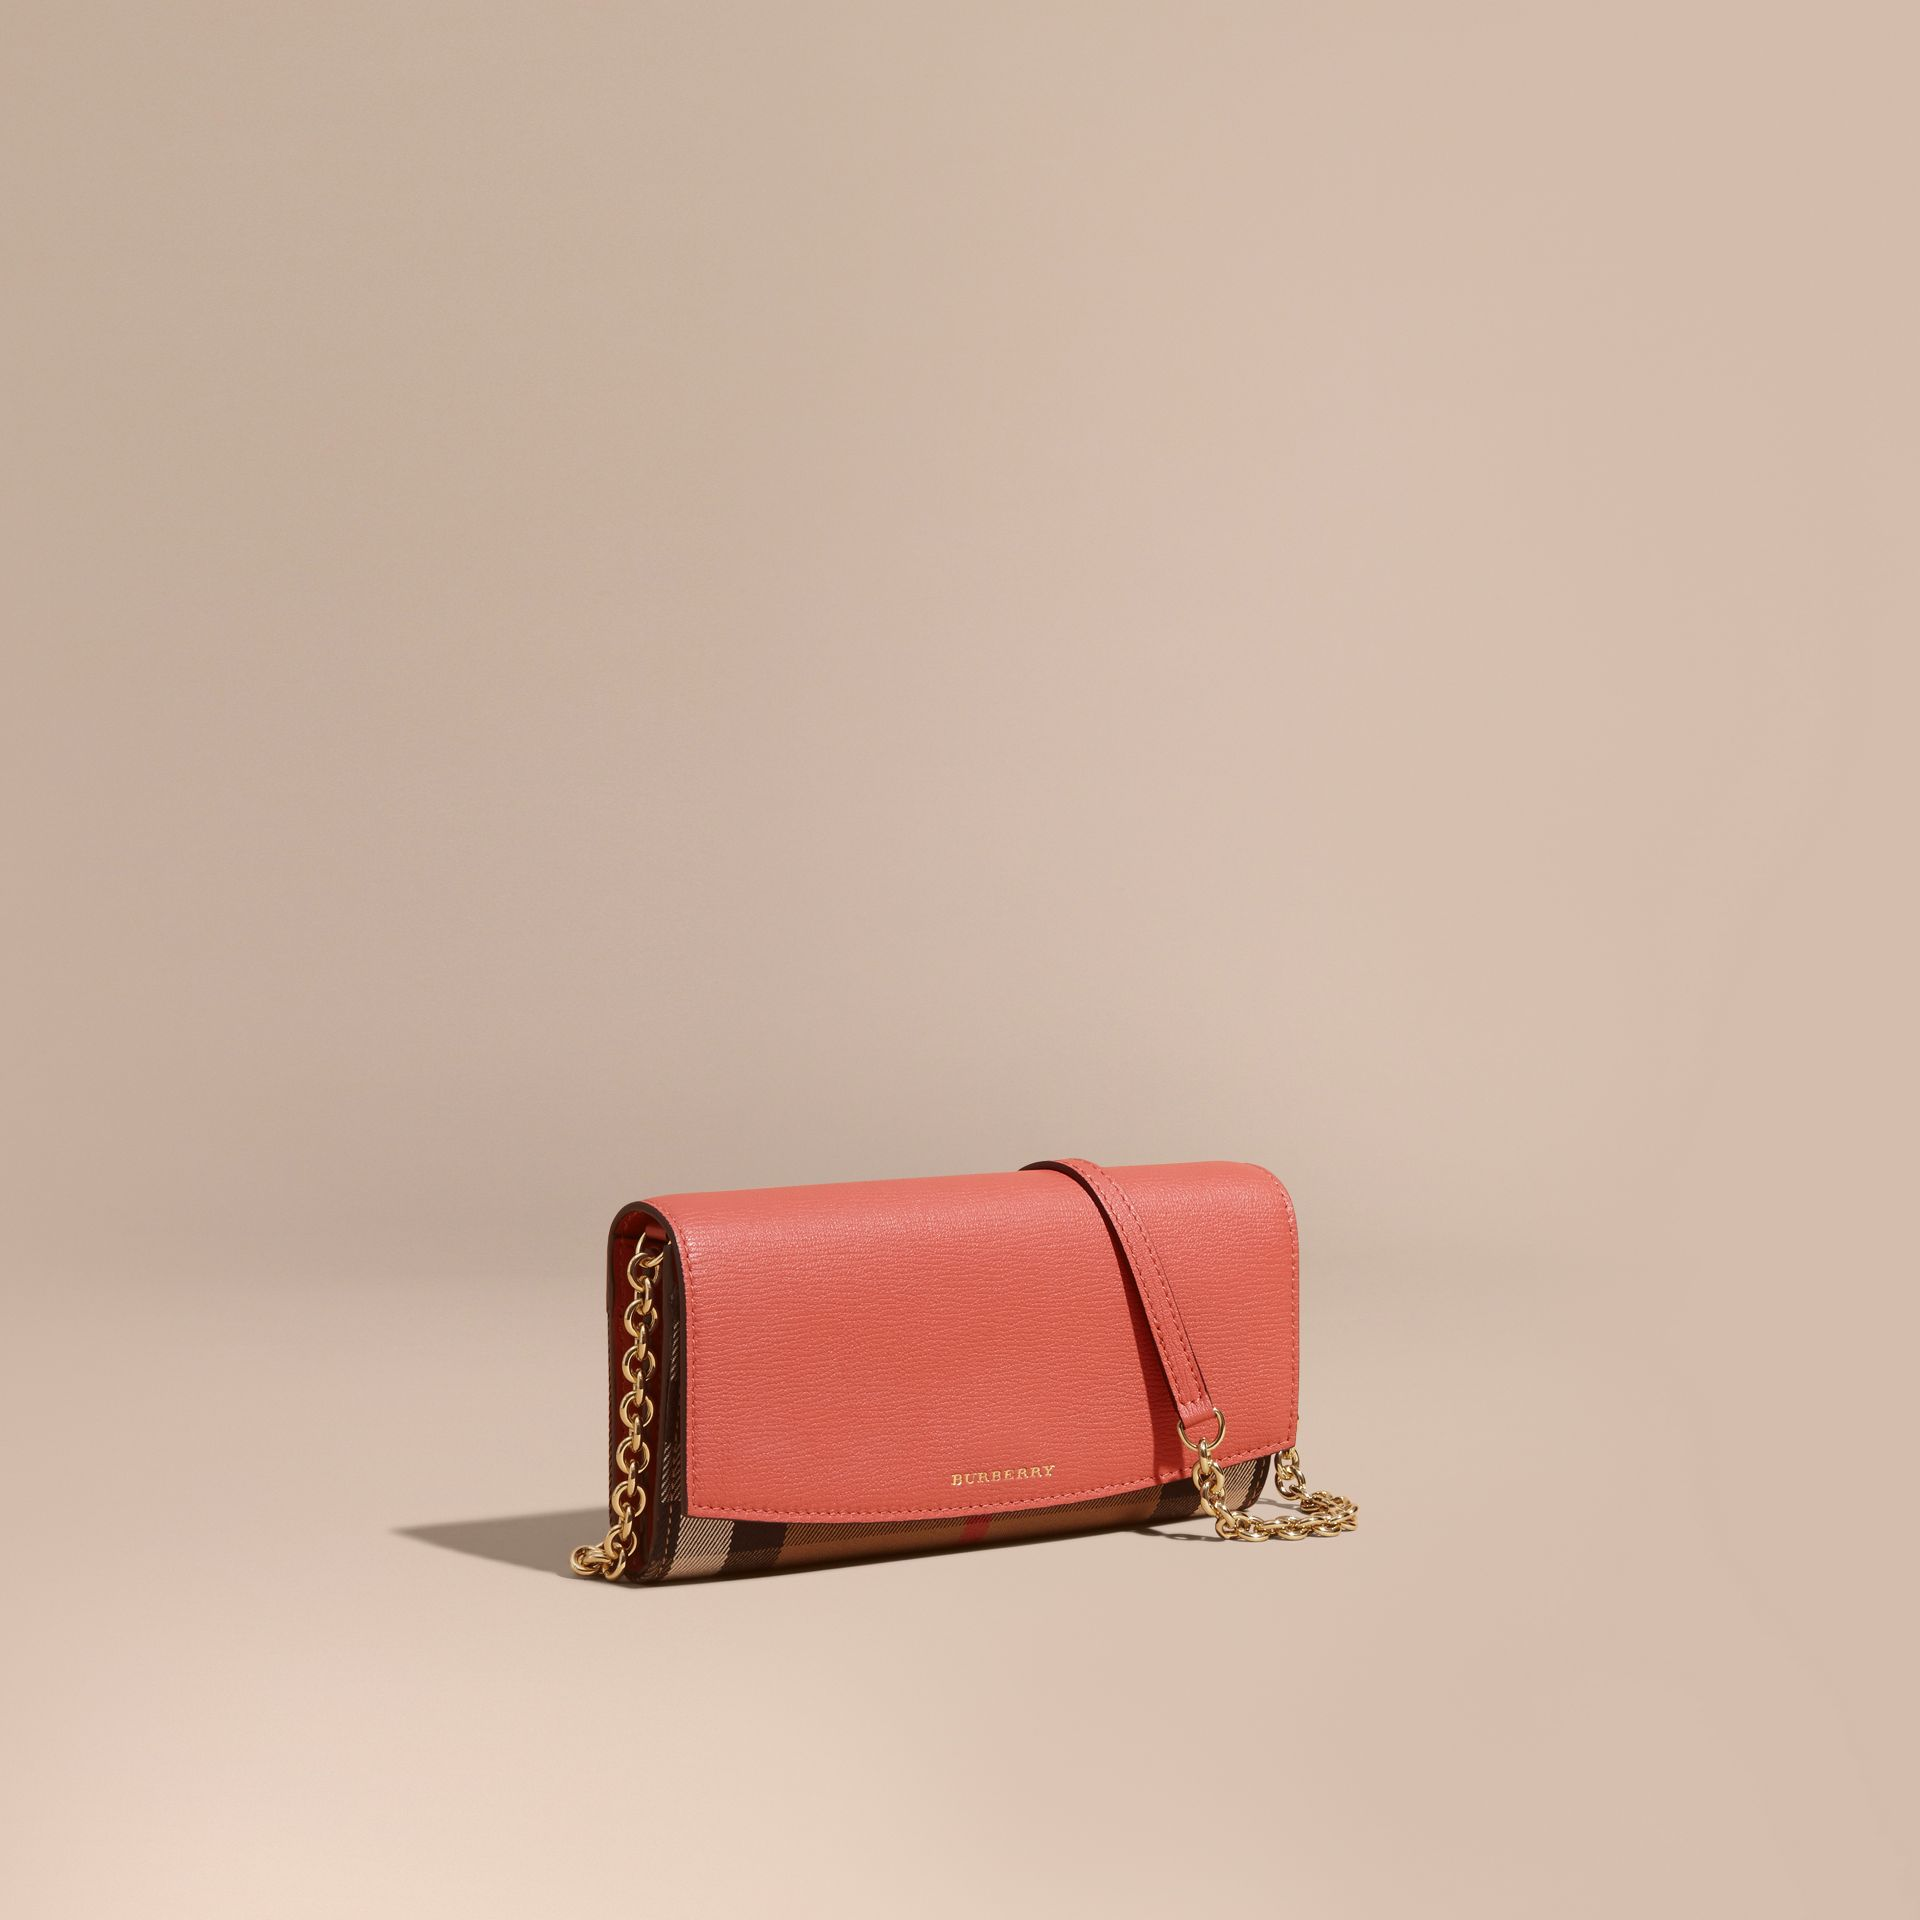 House Check and Leather Wallet with Chain in Cinnamon Red - Women | Burberry Canada - gallery image 0